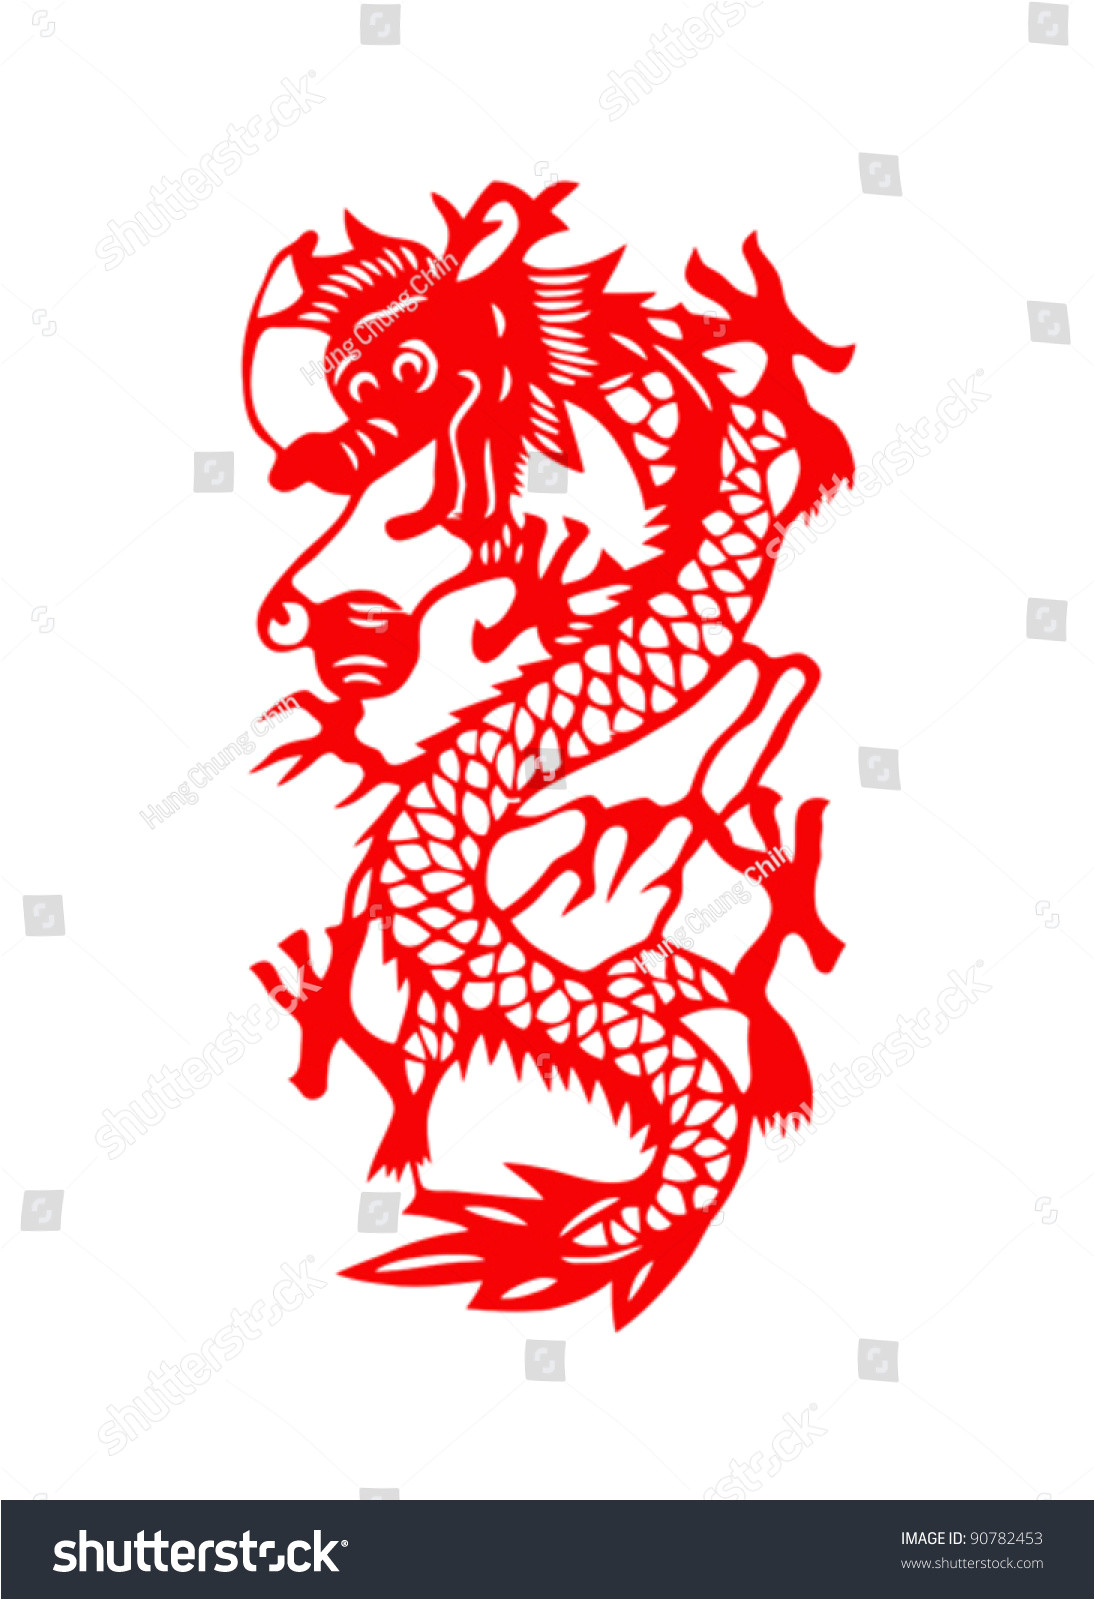 Chinese Paper Cutting Templates Dragon Dragon Paper Cut Chinese New Year Stock Vector 90782453